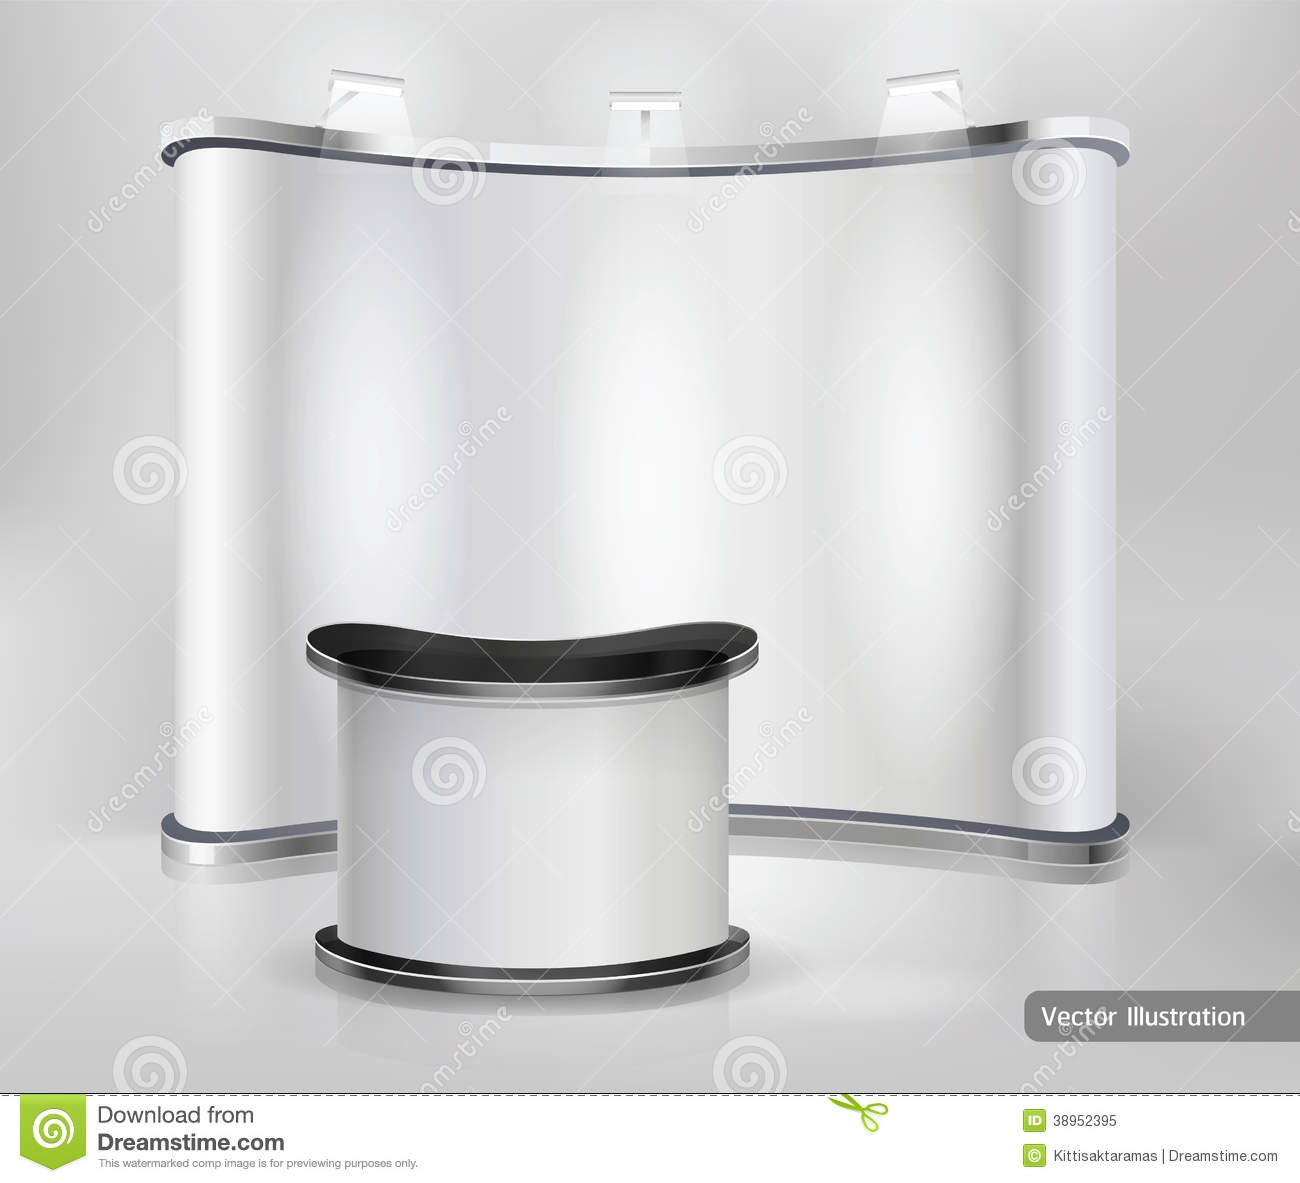 Exhibition Stand Wallpaper : Trade exhibition stand royalty free stock photo